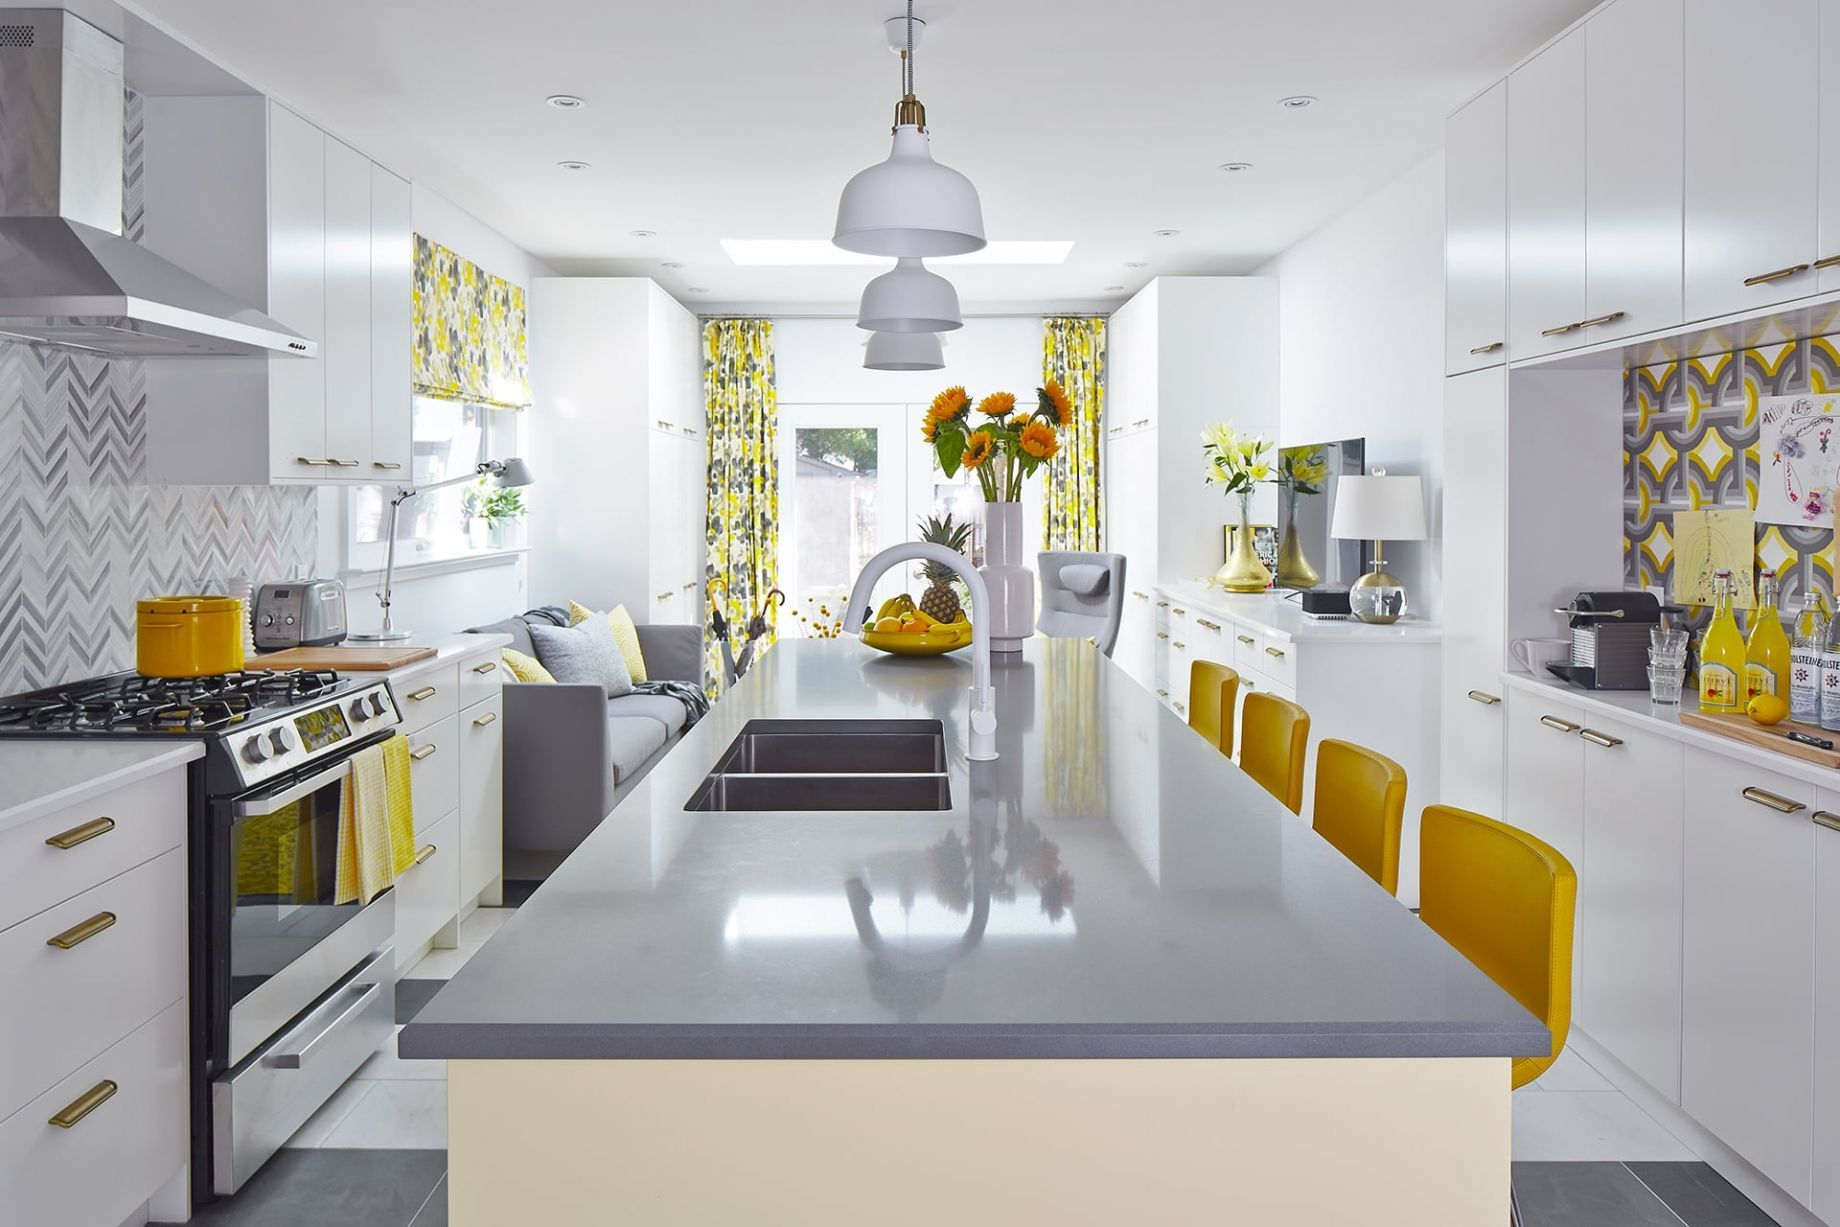 Sunny Side Up Kitchen White And Grey Kitchen With Yellow Island And Seating White Kitchen Decor Grey Yellow Kitchen Yellow Kitchen Accents